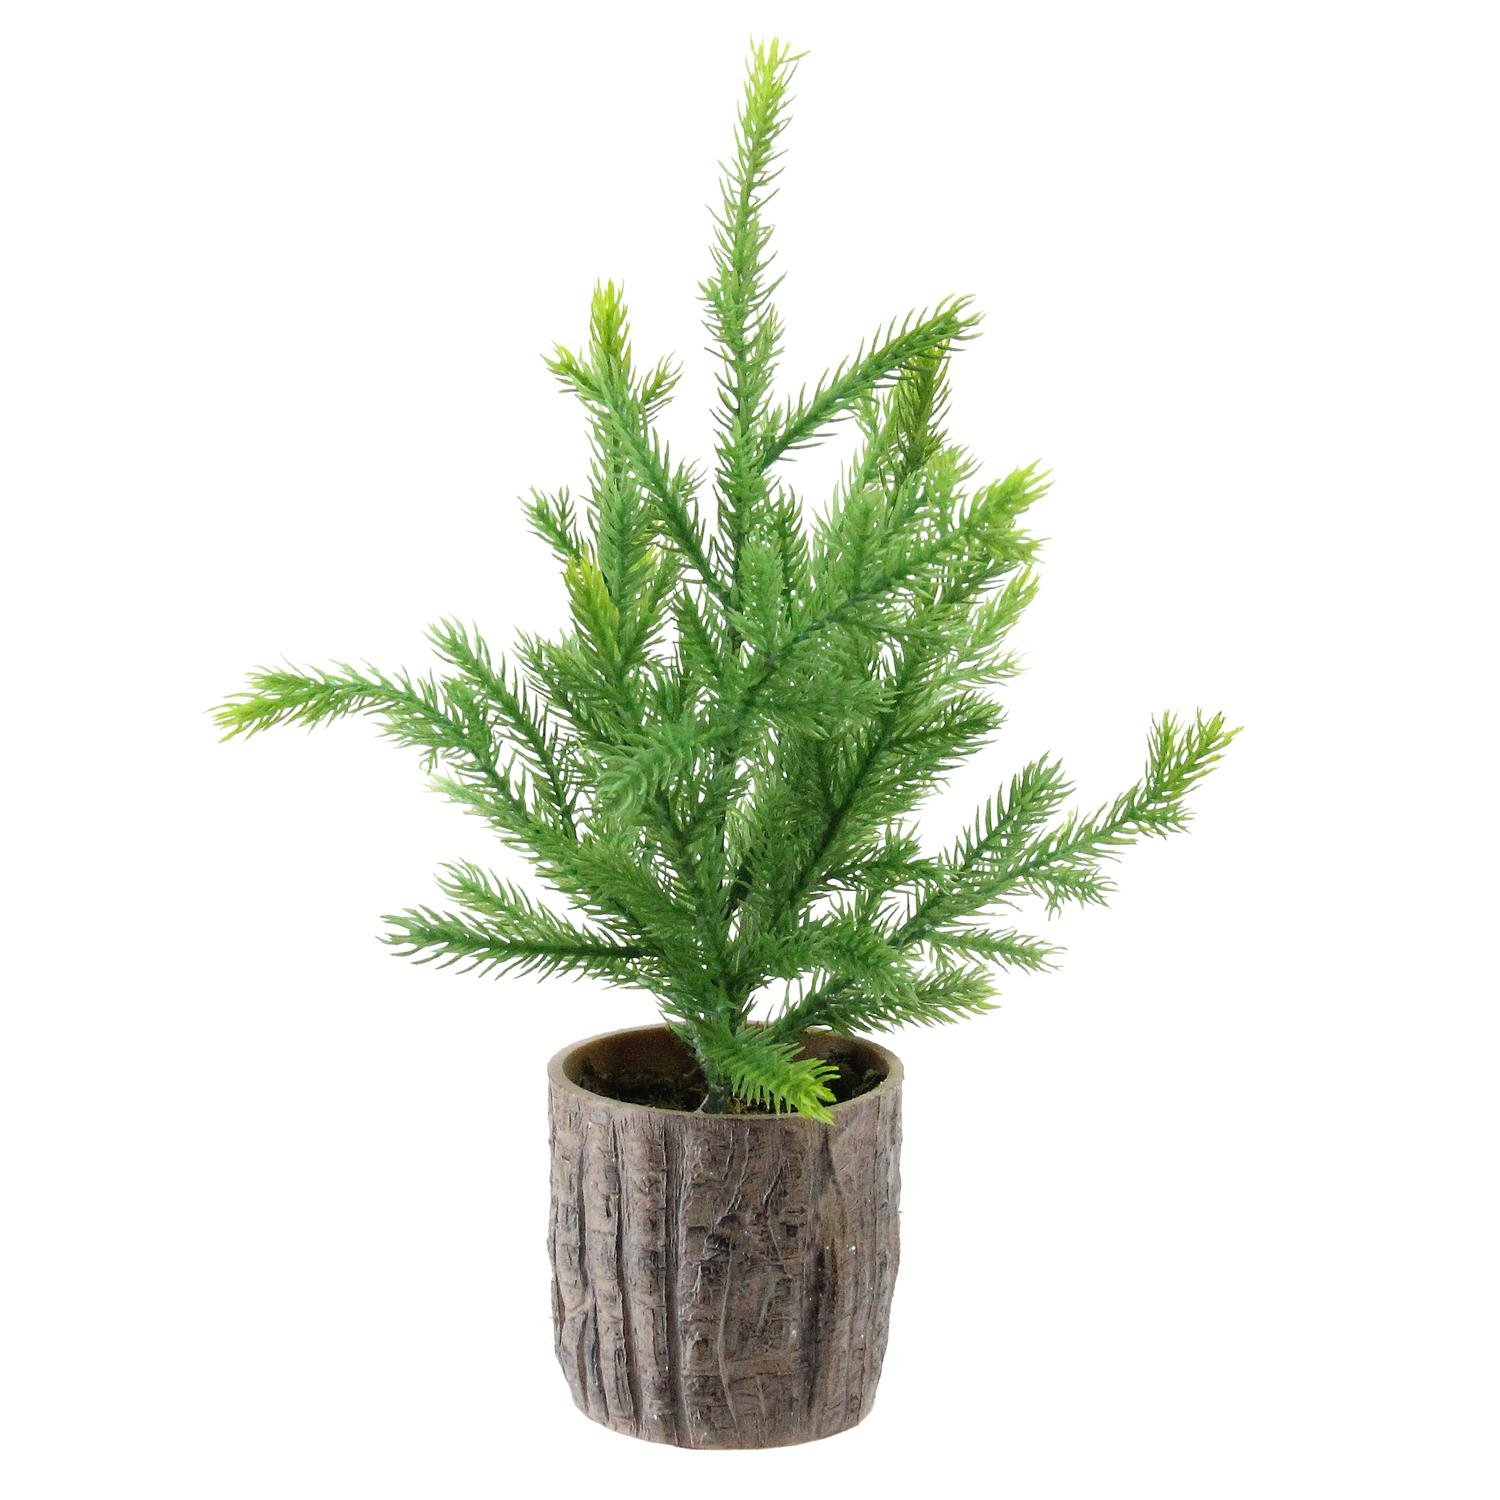 Northlight NL00065 Artificial Pine Christmas Tree in Wooden Pot, 12''